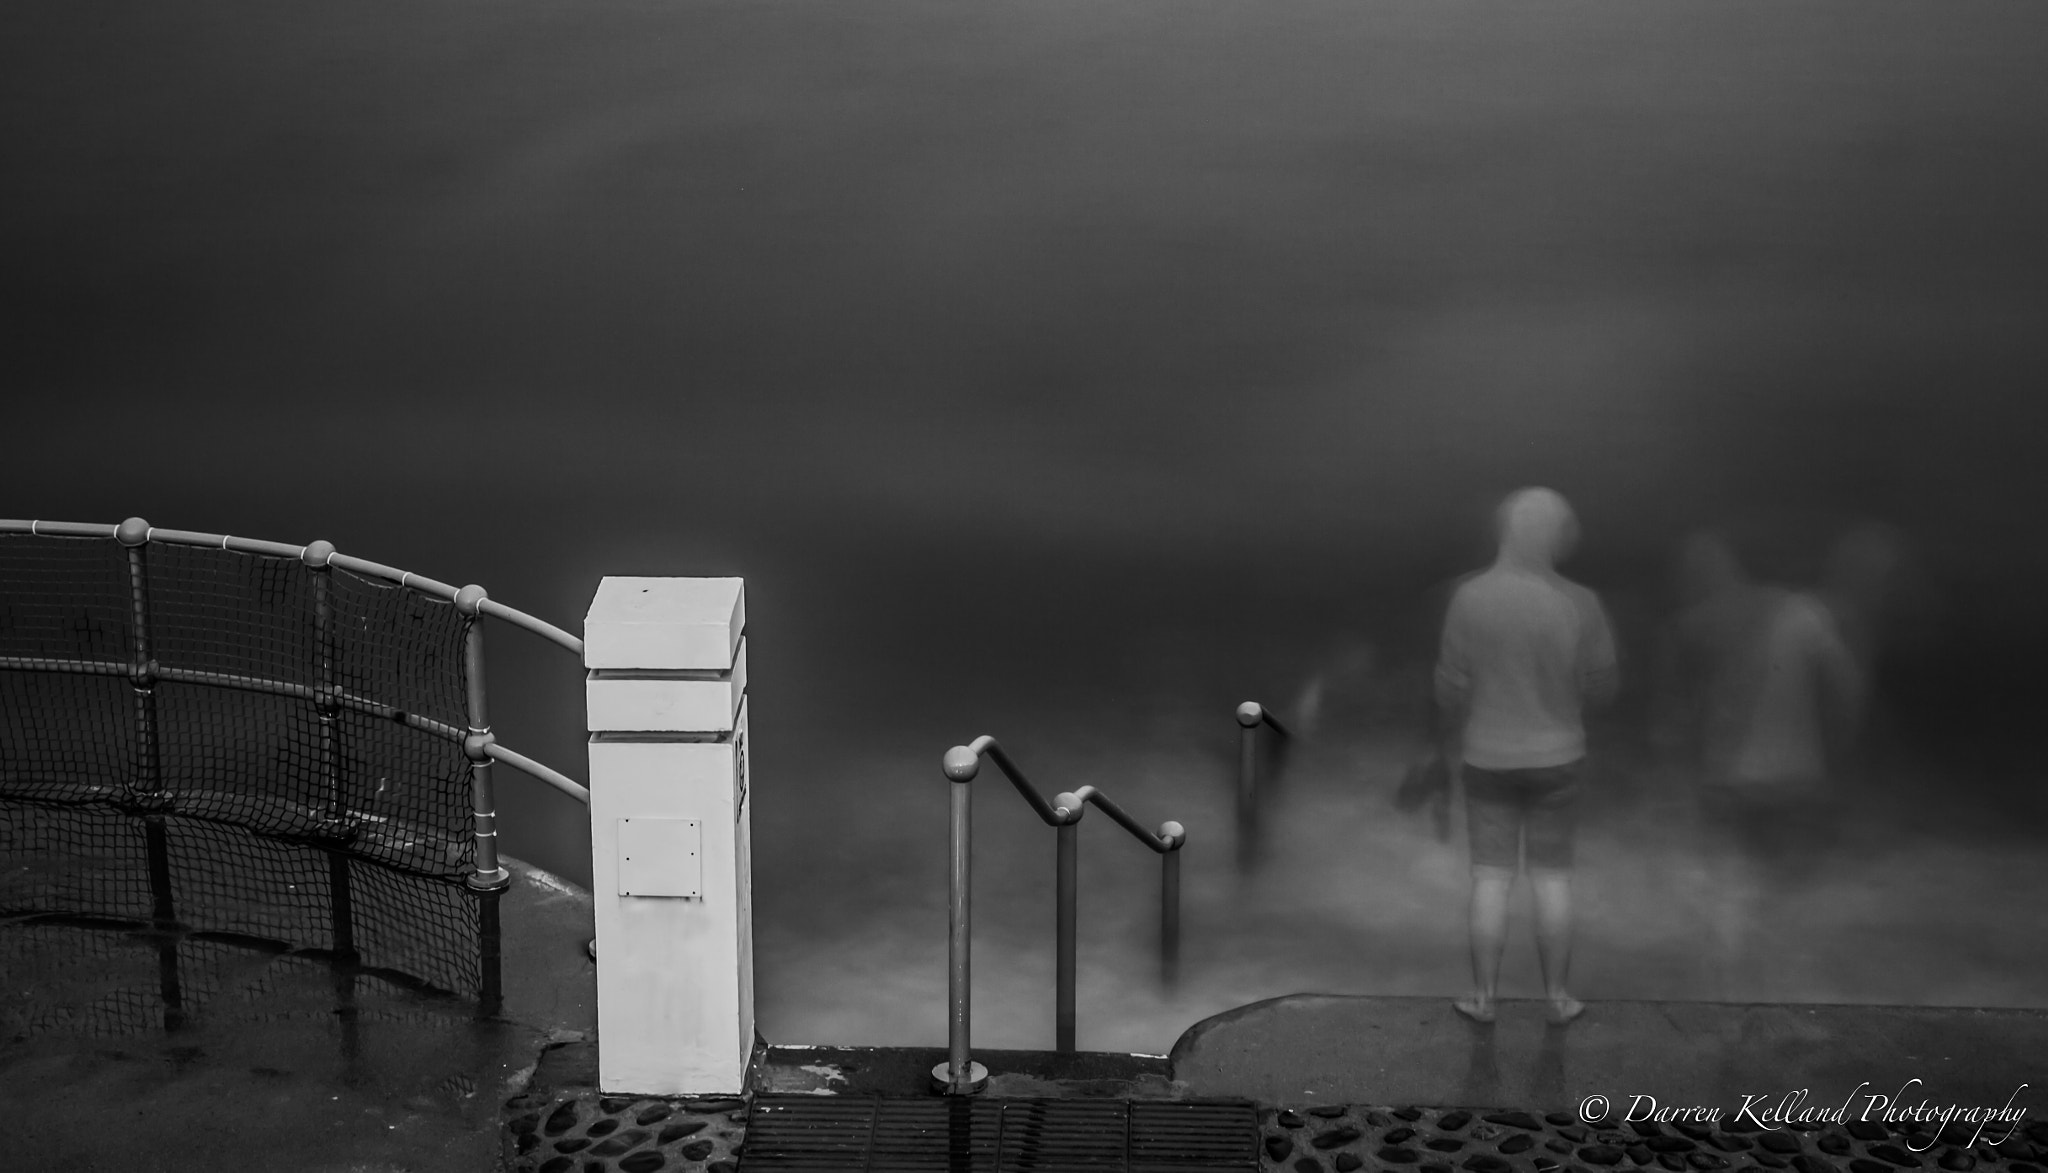 Photograph Ghosts at the bathing pool by Darren Kelland on 500px